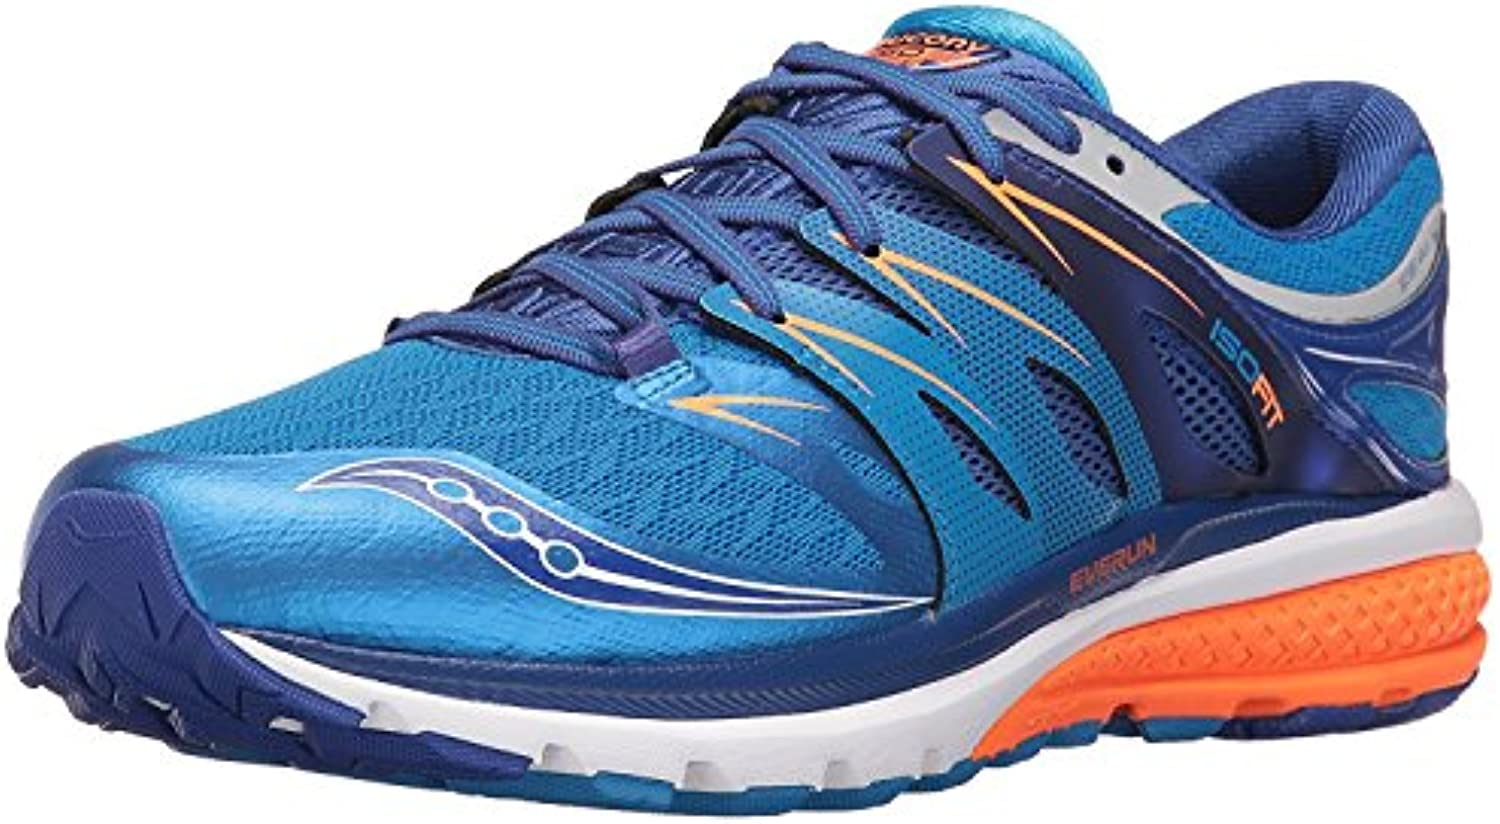 Saucony Men's Zealot ISO 2 Running Shoe  Blau Orange  43 EU/8.5 UK